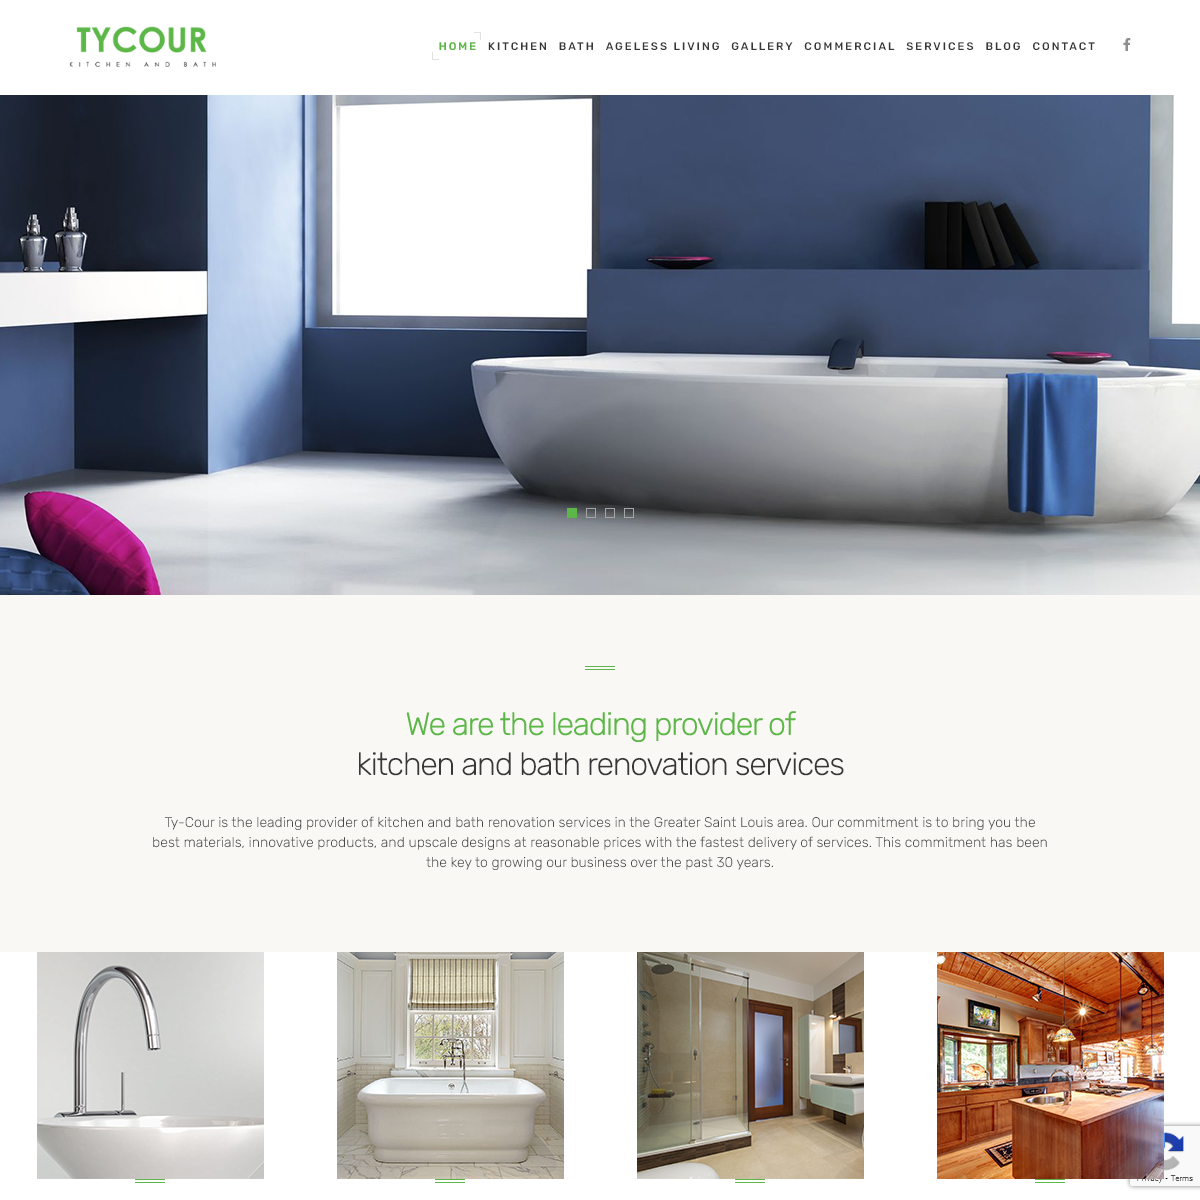 TYCOUR Kitchen and Bath – We are the leading provider of kitchen and bath renovation services and ageless living